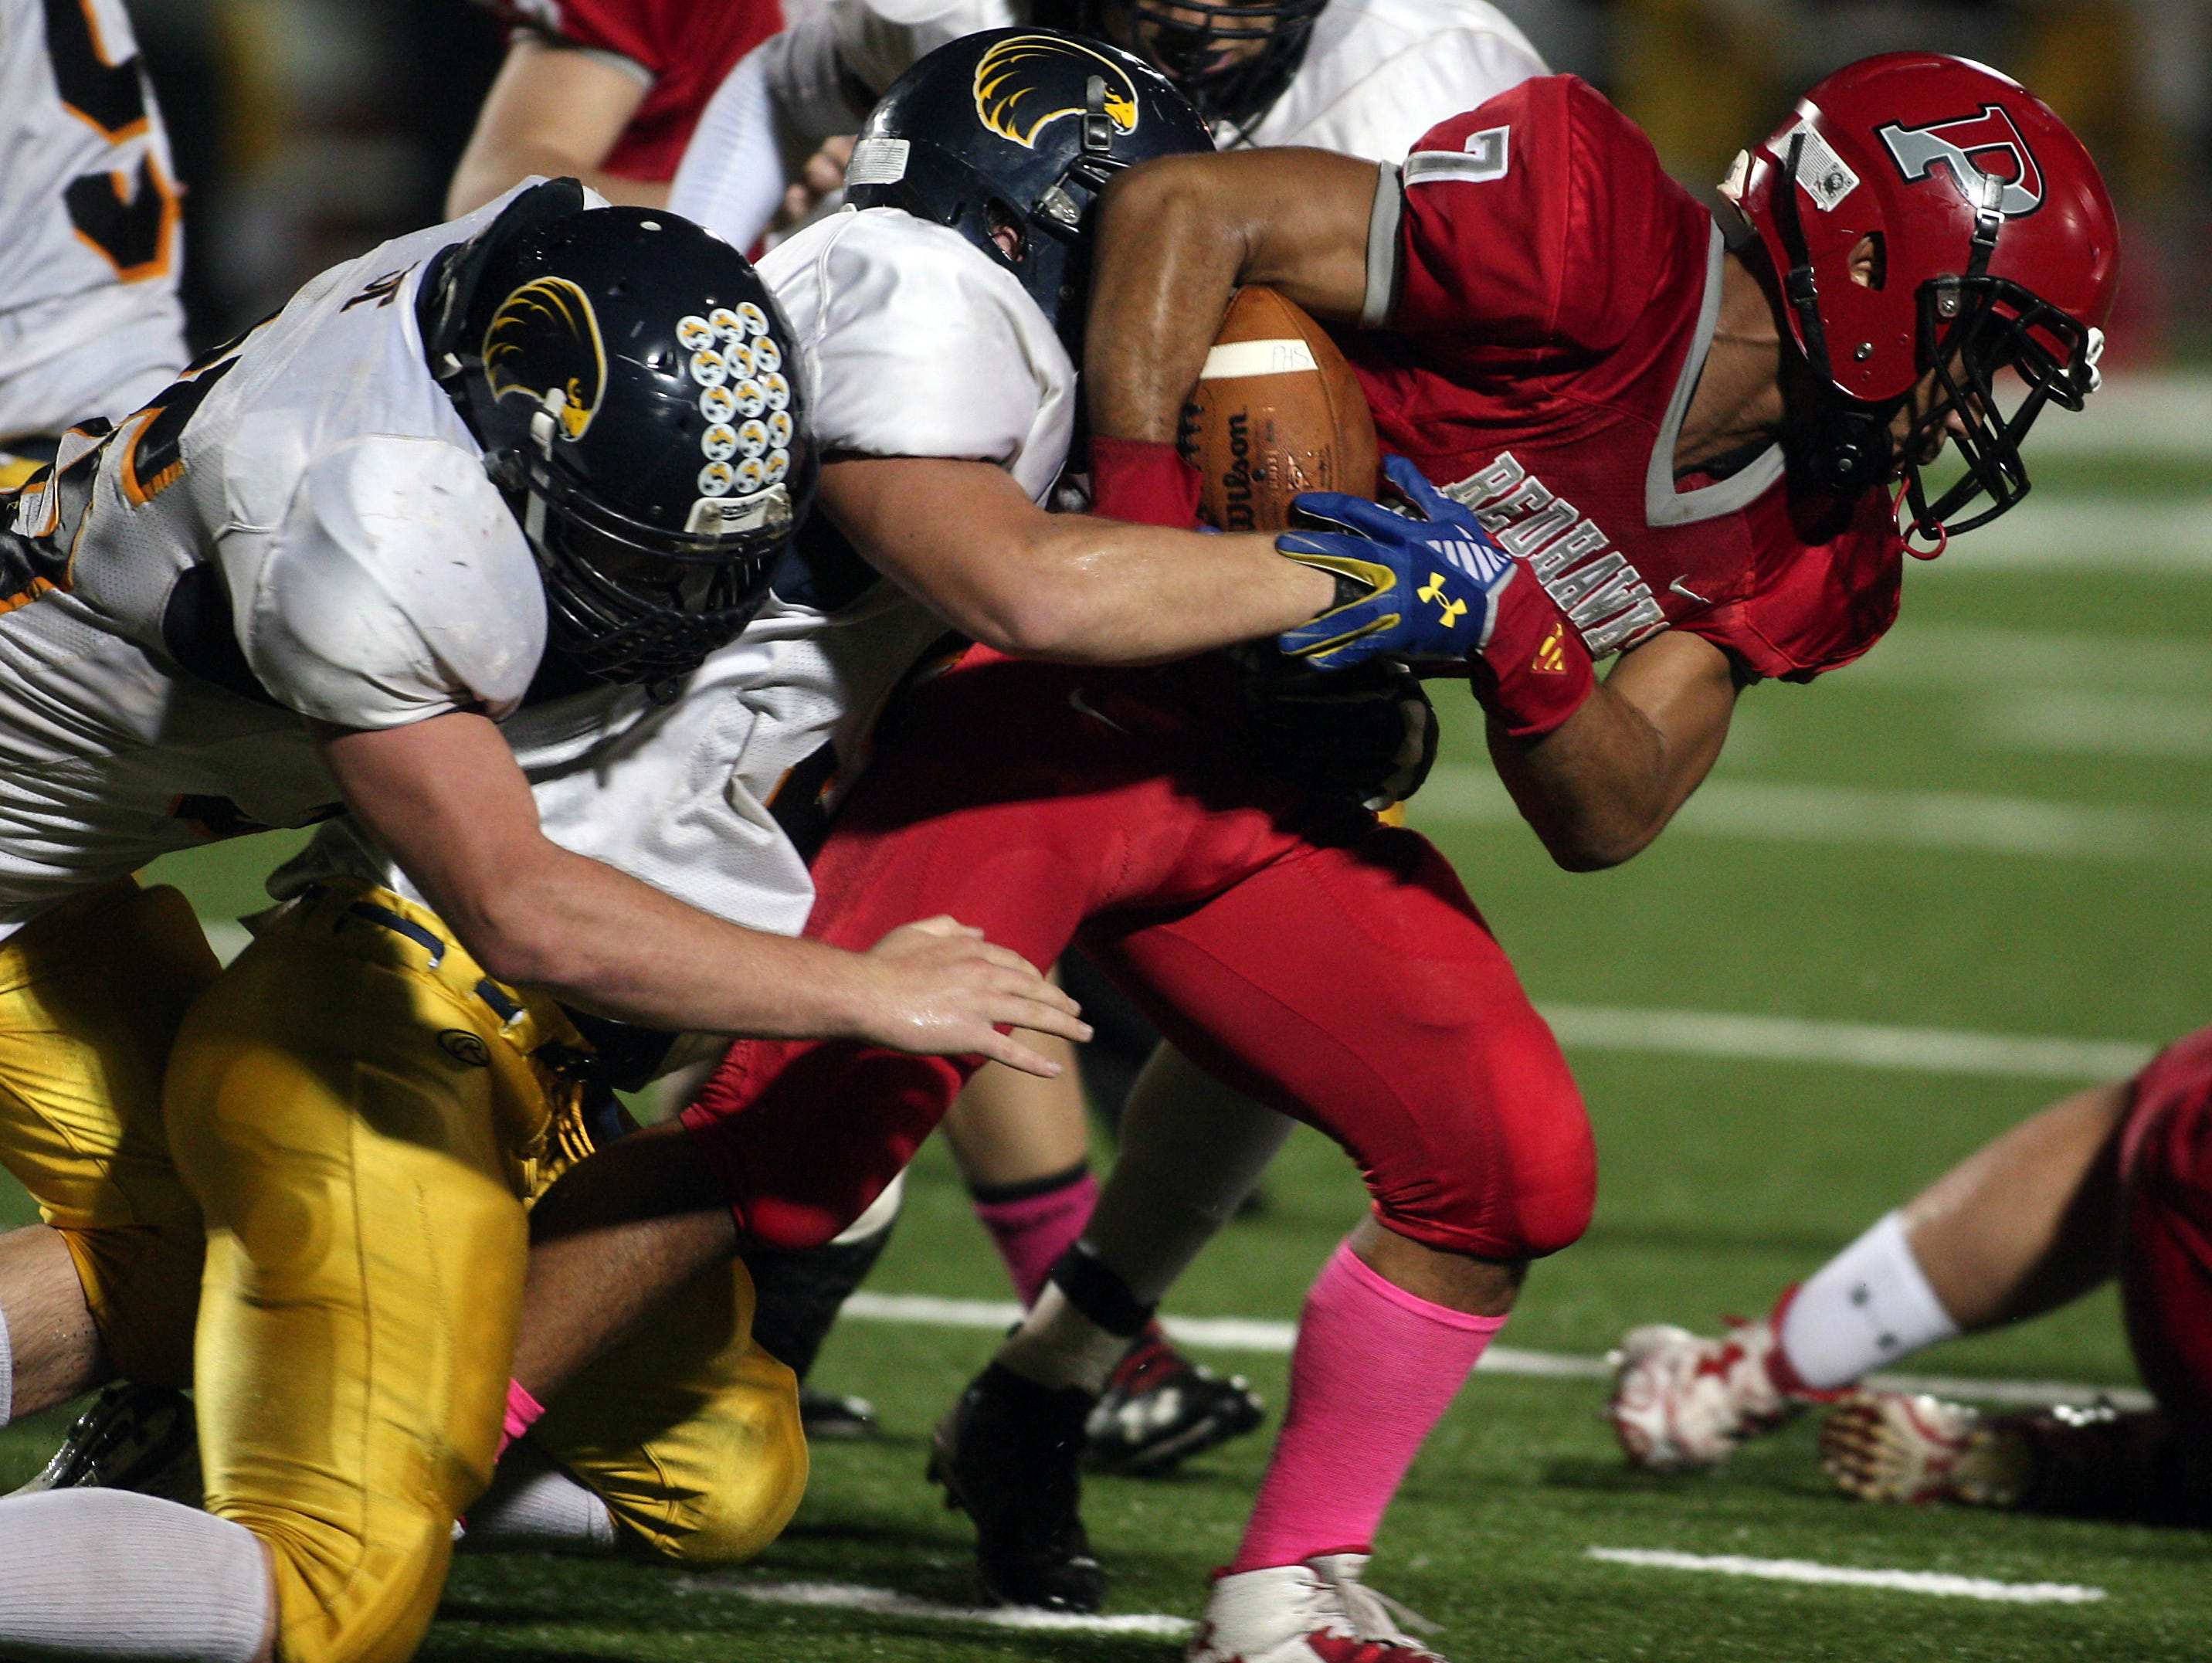 Parsippany running back Nigel Feliz gains yardage on a carry vs Jefferson in a Friday night football matchup. October 9, 2015, Parsippany, NJ.